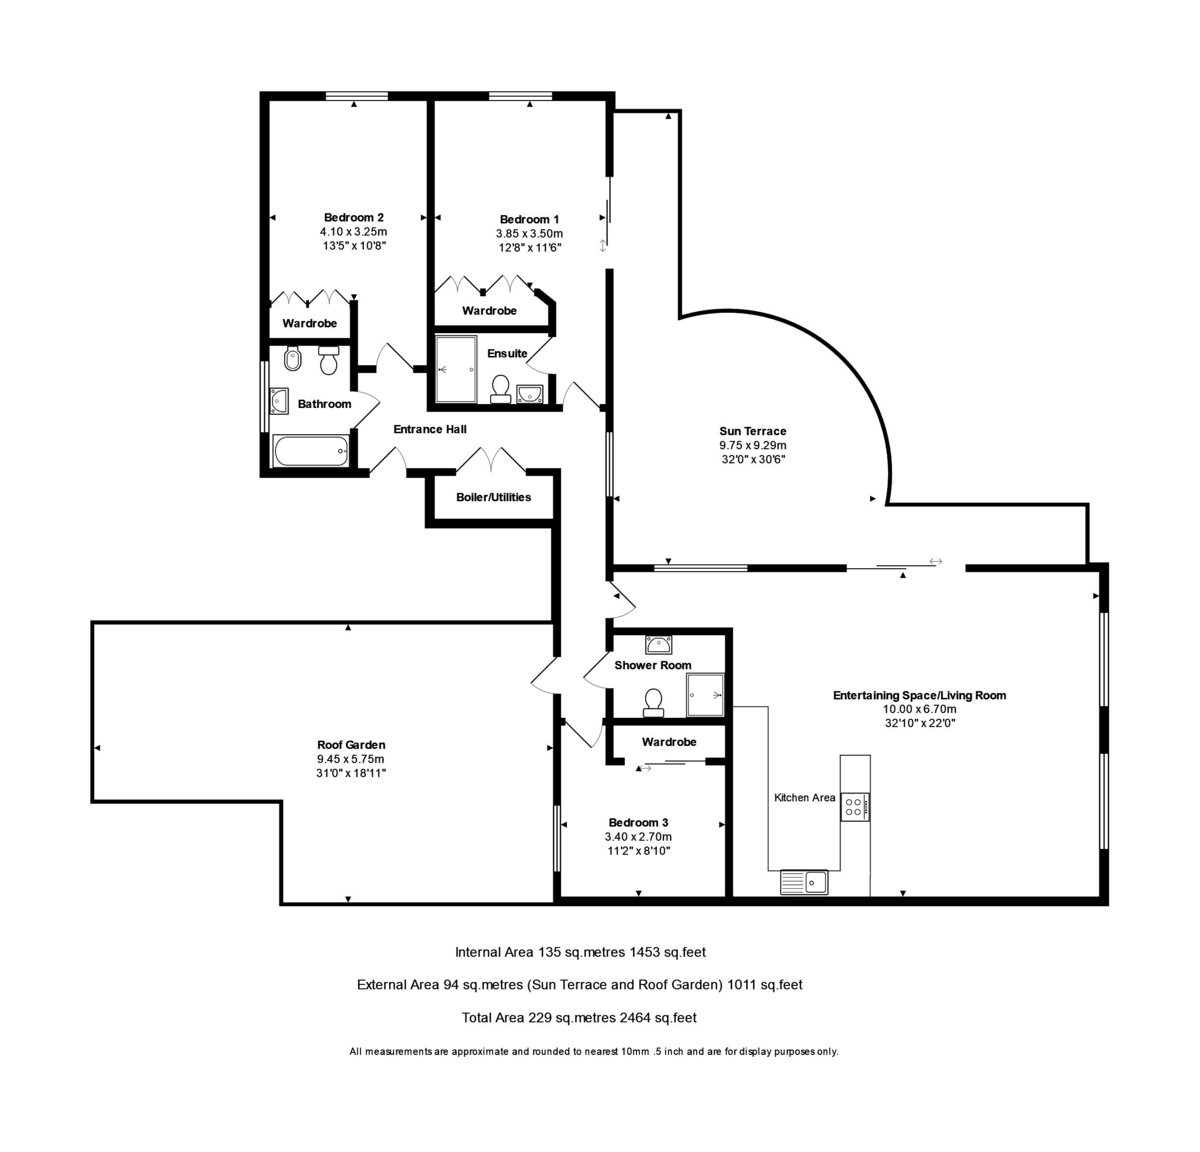 The Reef, Boscombe Spa, Boscombe Spa, Bournemouth, BH5 1AY floorplan